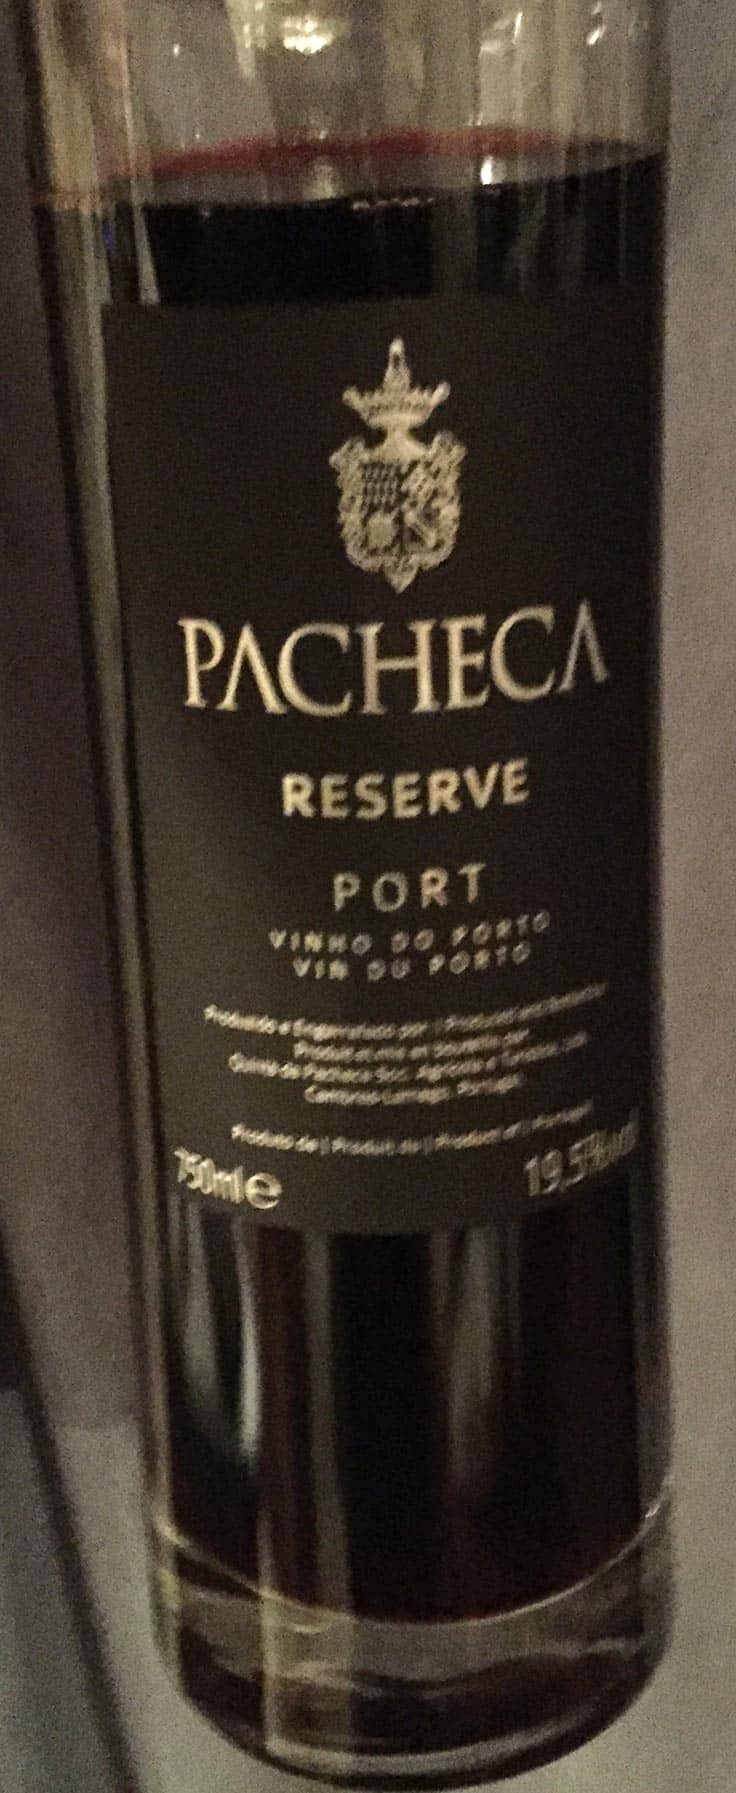 Pacheca Reserve Port is a nice way to finish a chilly winter evening. A Cooking Chat wine of the month pick.